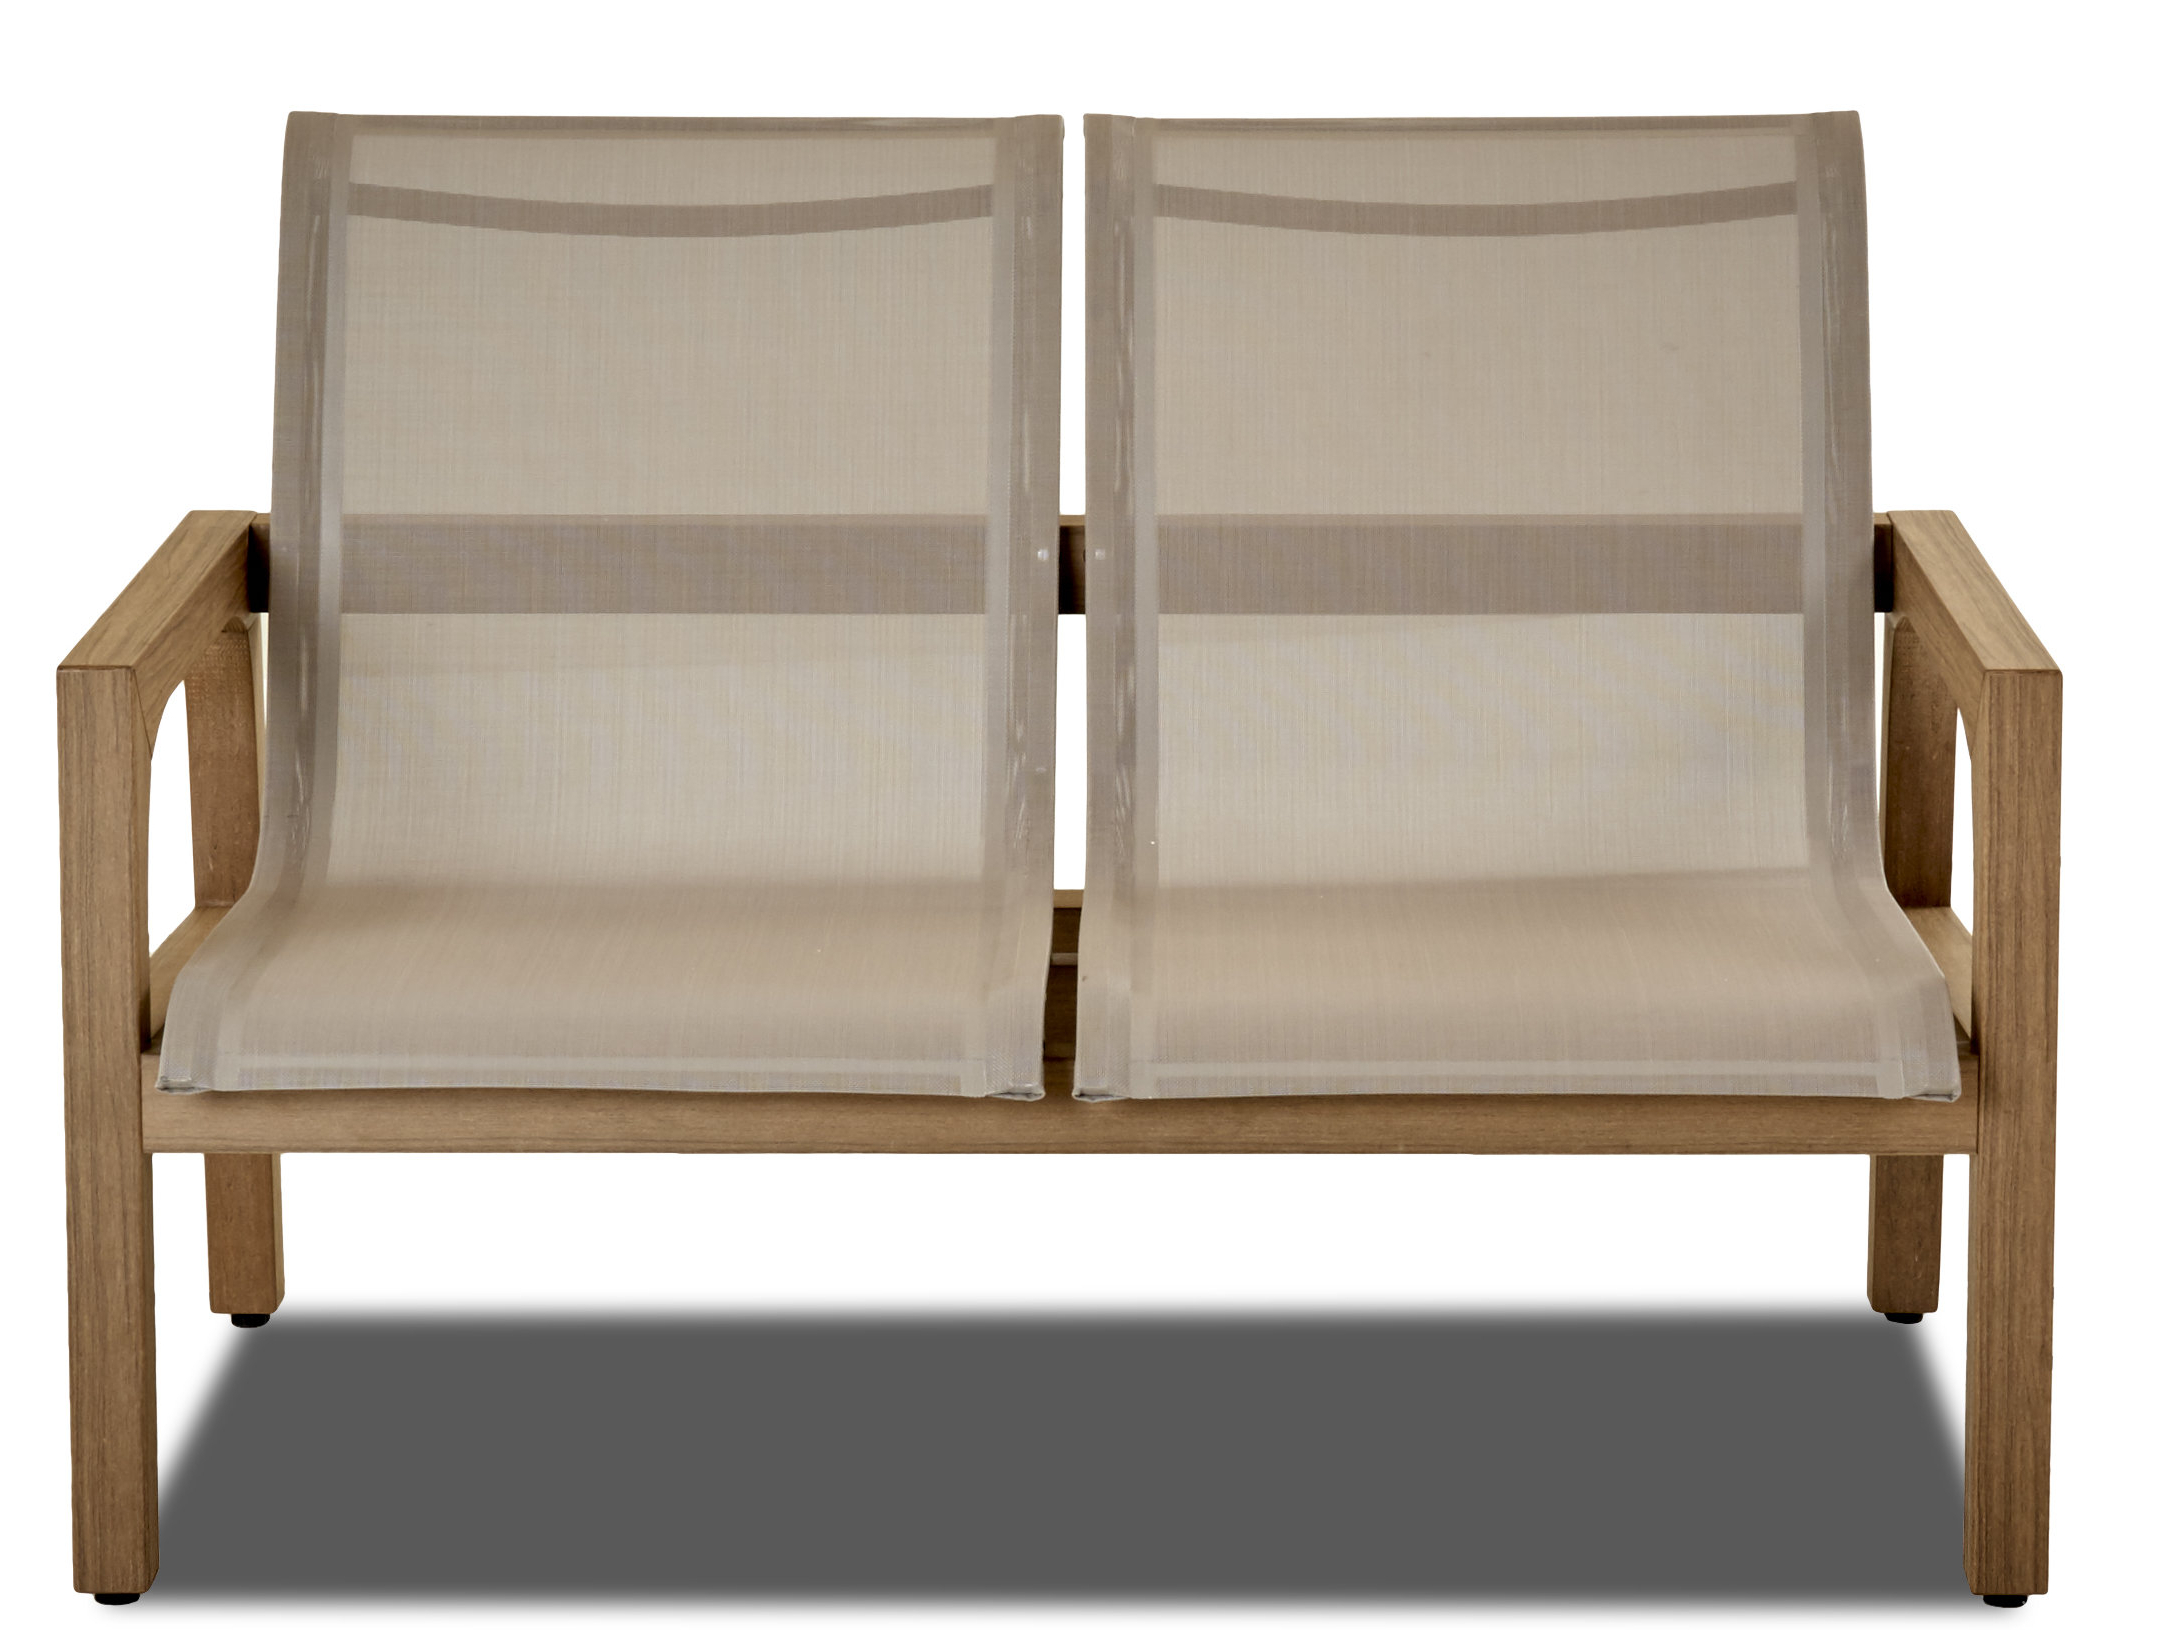 Current Calila Teak Loveseats With Cushion For Lawson Patio Teak Loveseat (View 8 of 20)